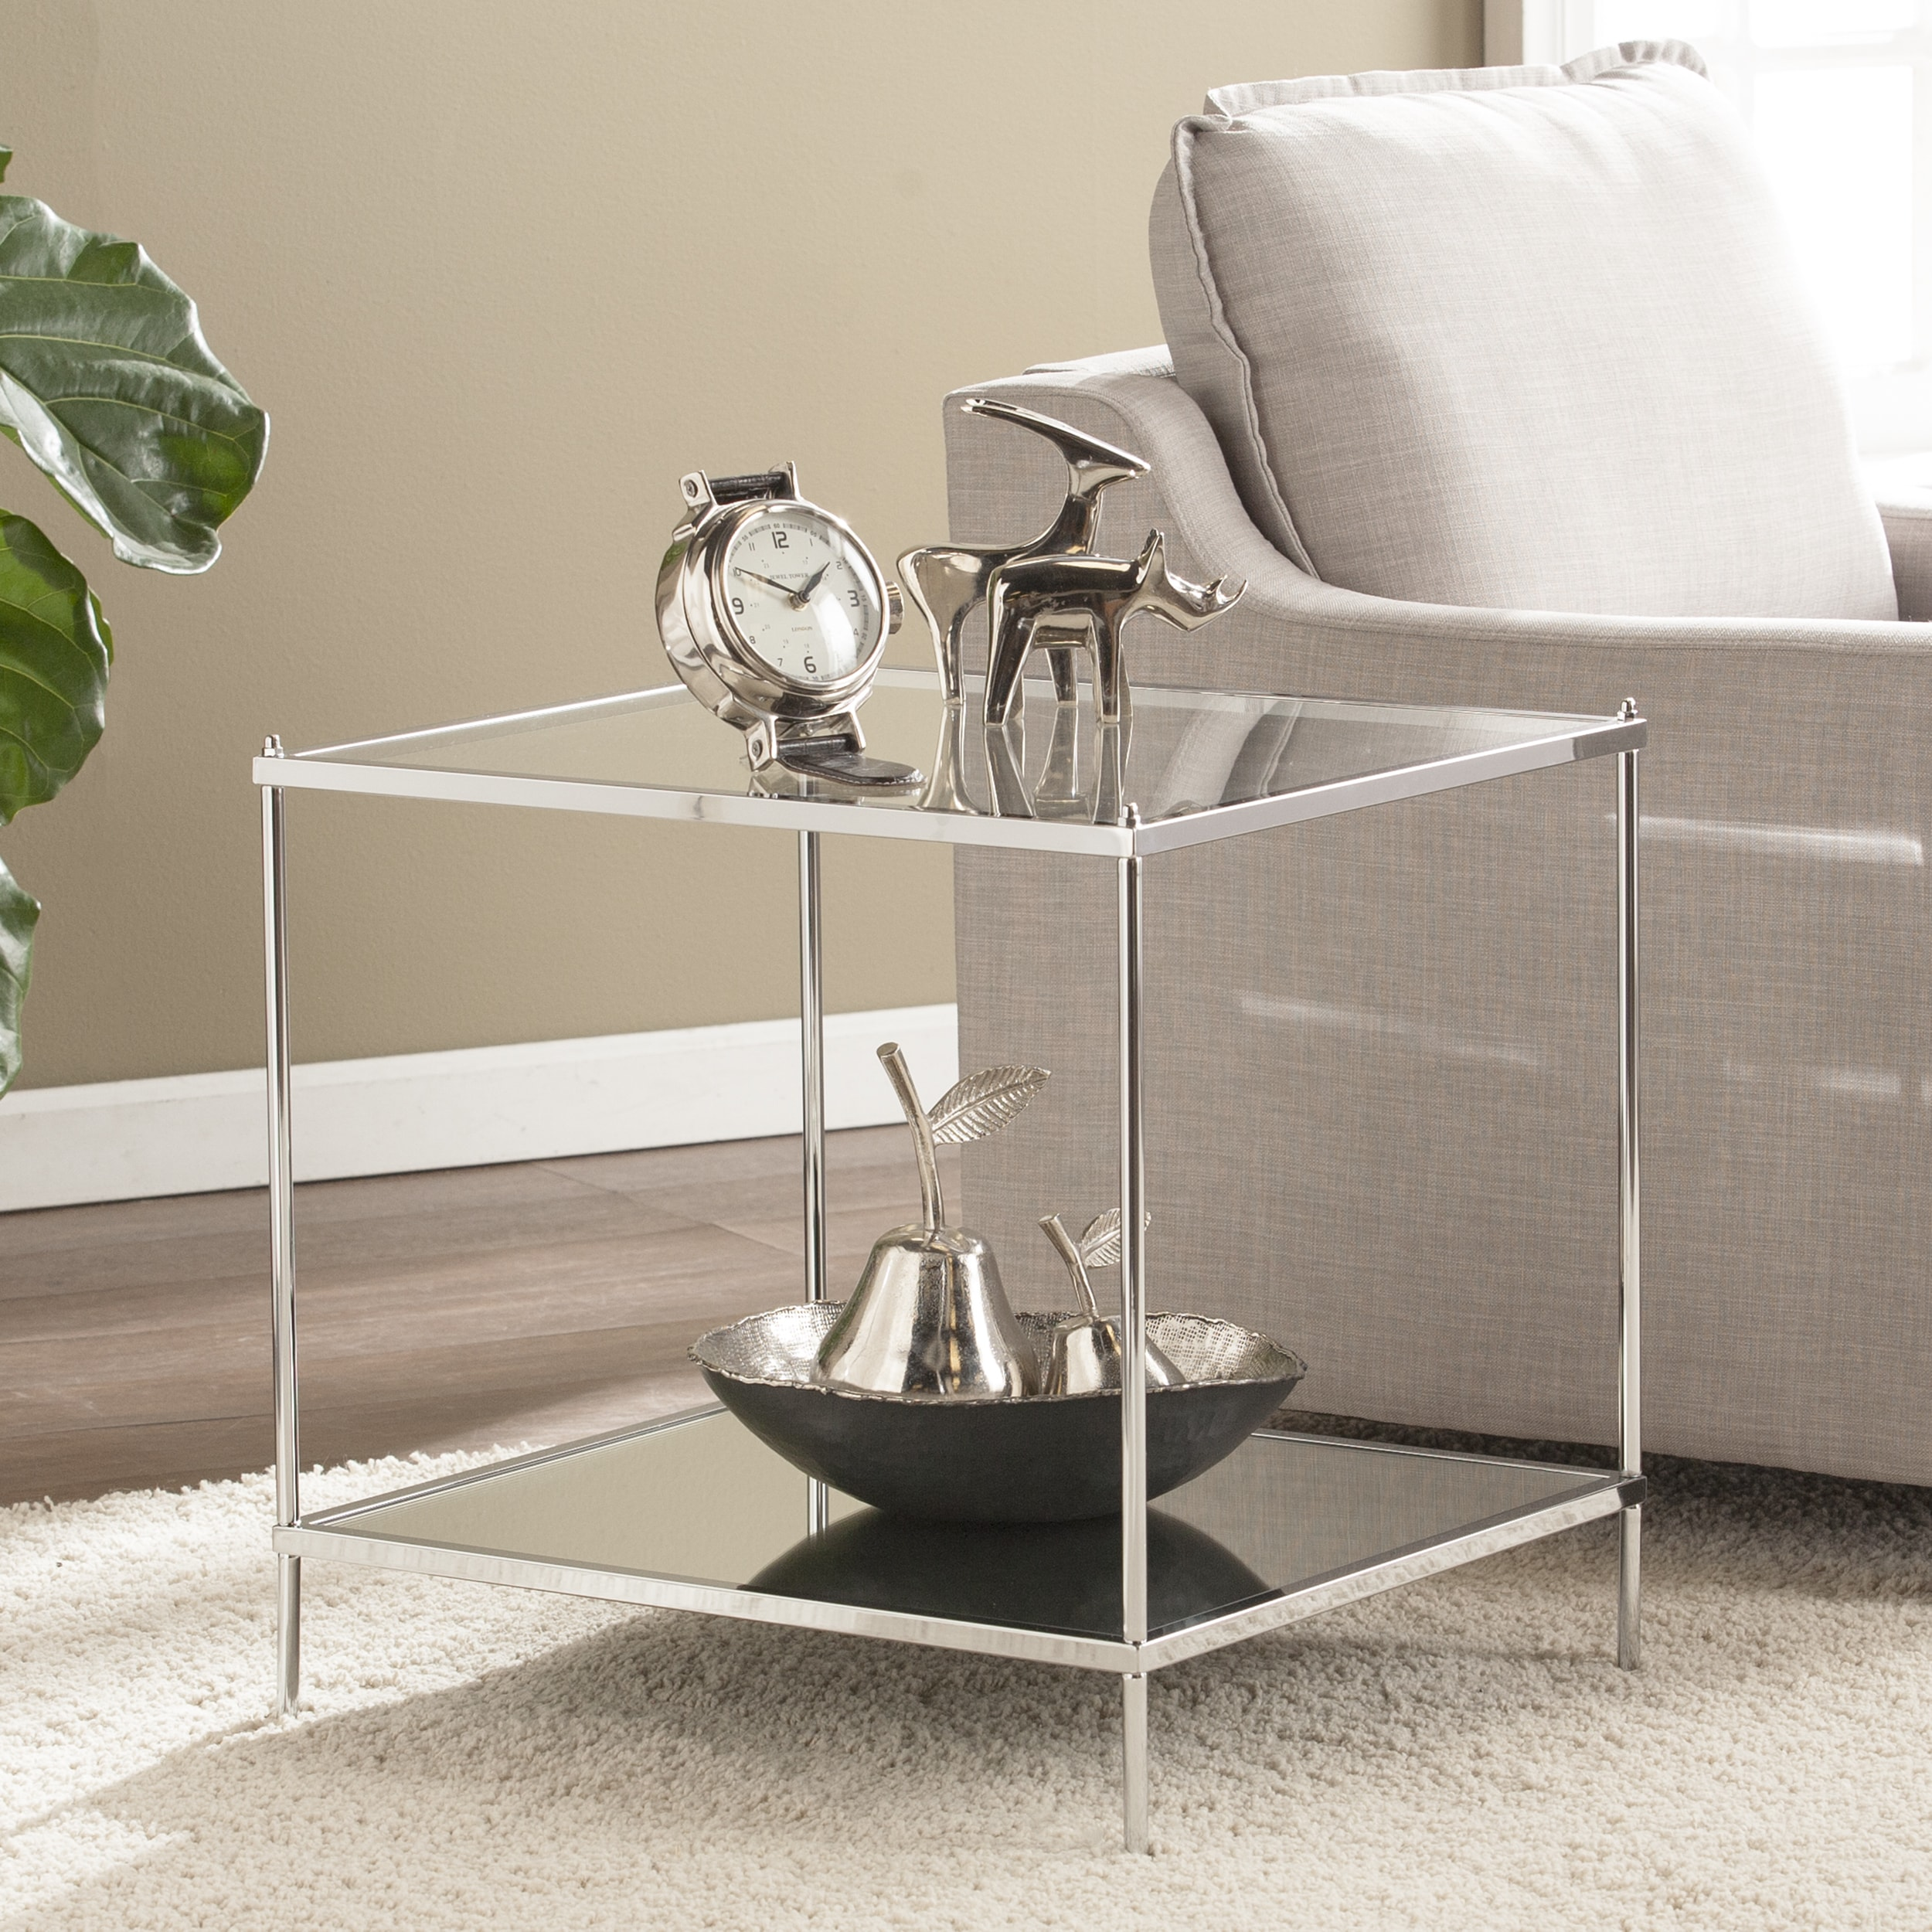 Charmant Harper Blvd Knowles Glam Mirrored End Table U2013 Chrome